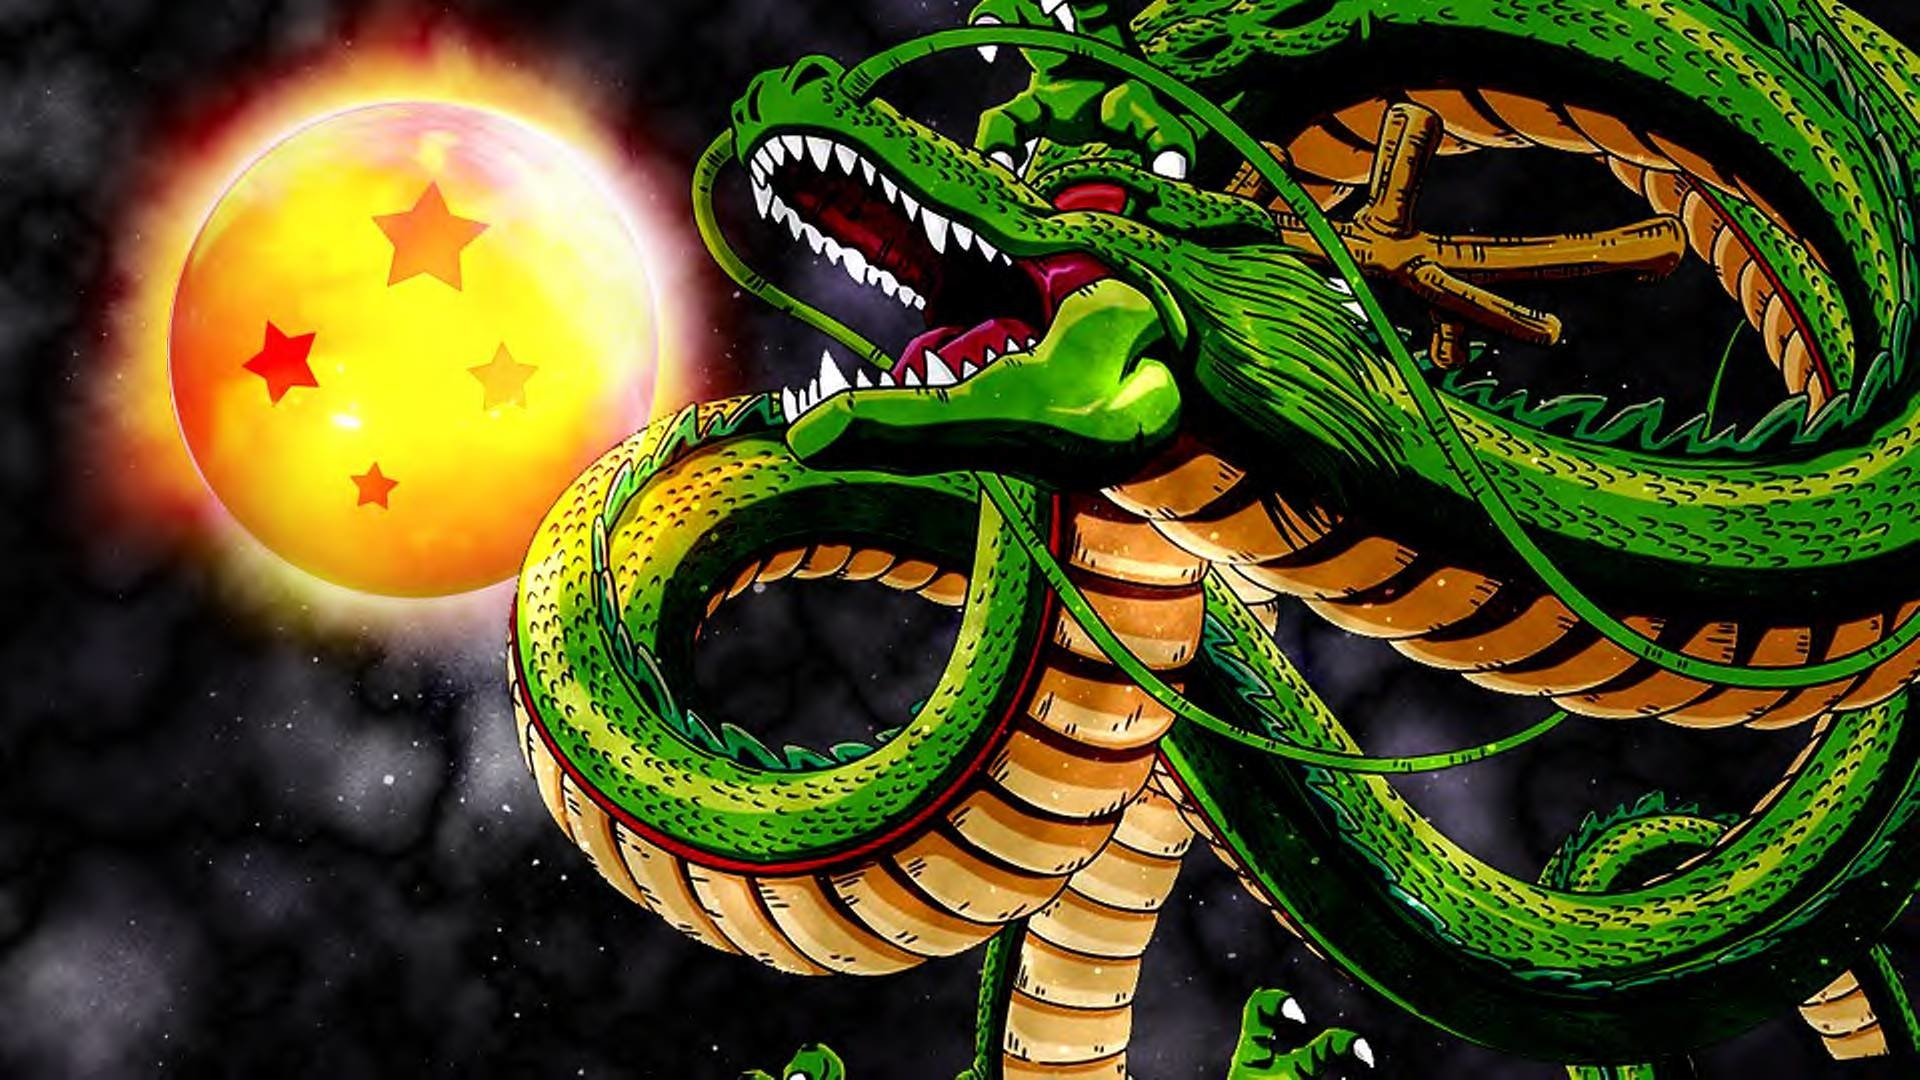 Anime - Dragon Ball Z  Shenron (Dragon Ball) Anime Künstlerisch Wallpaper